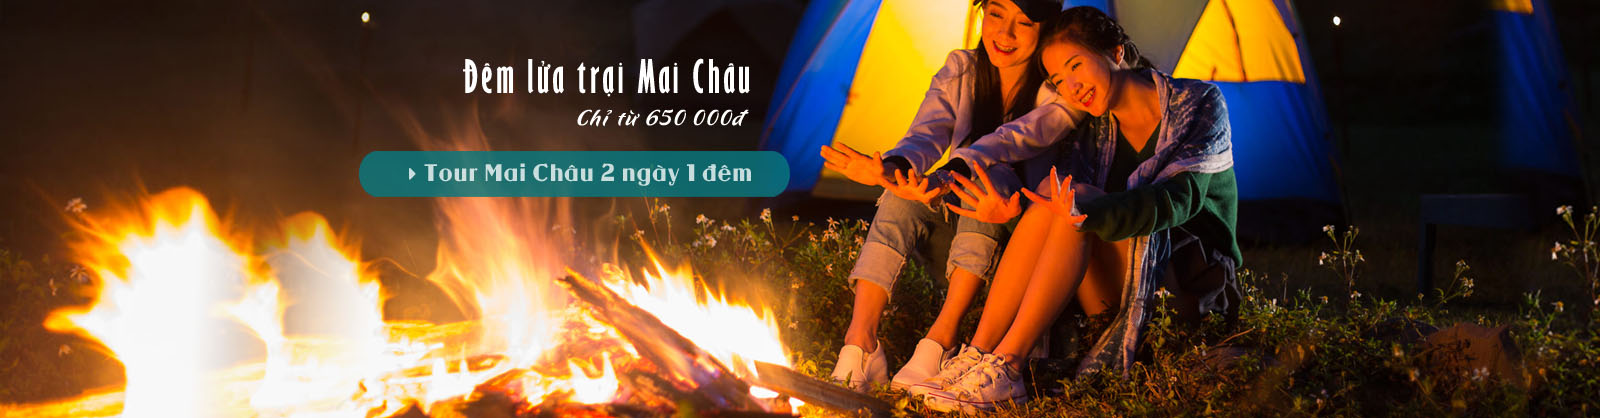 Đêm lửa trại Mai Châu